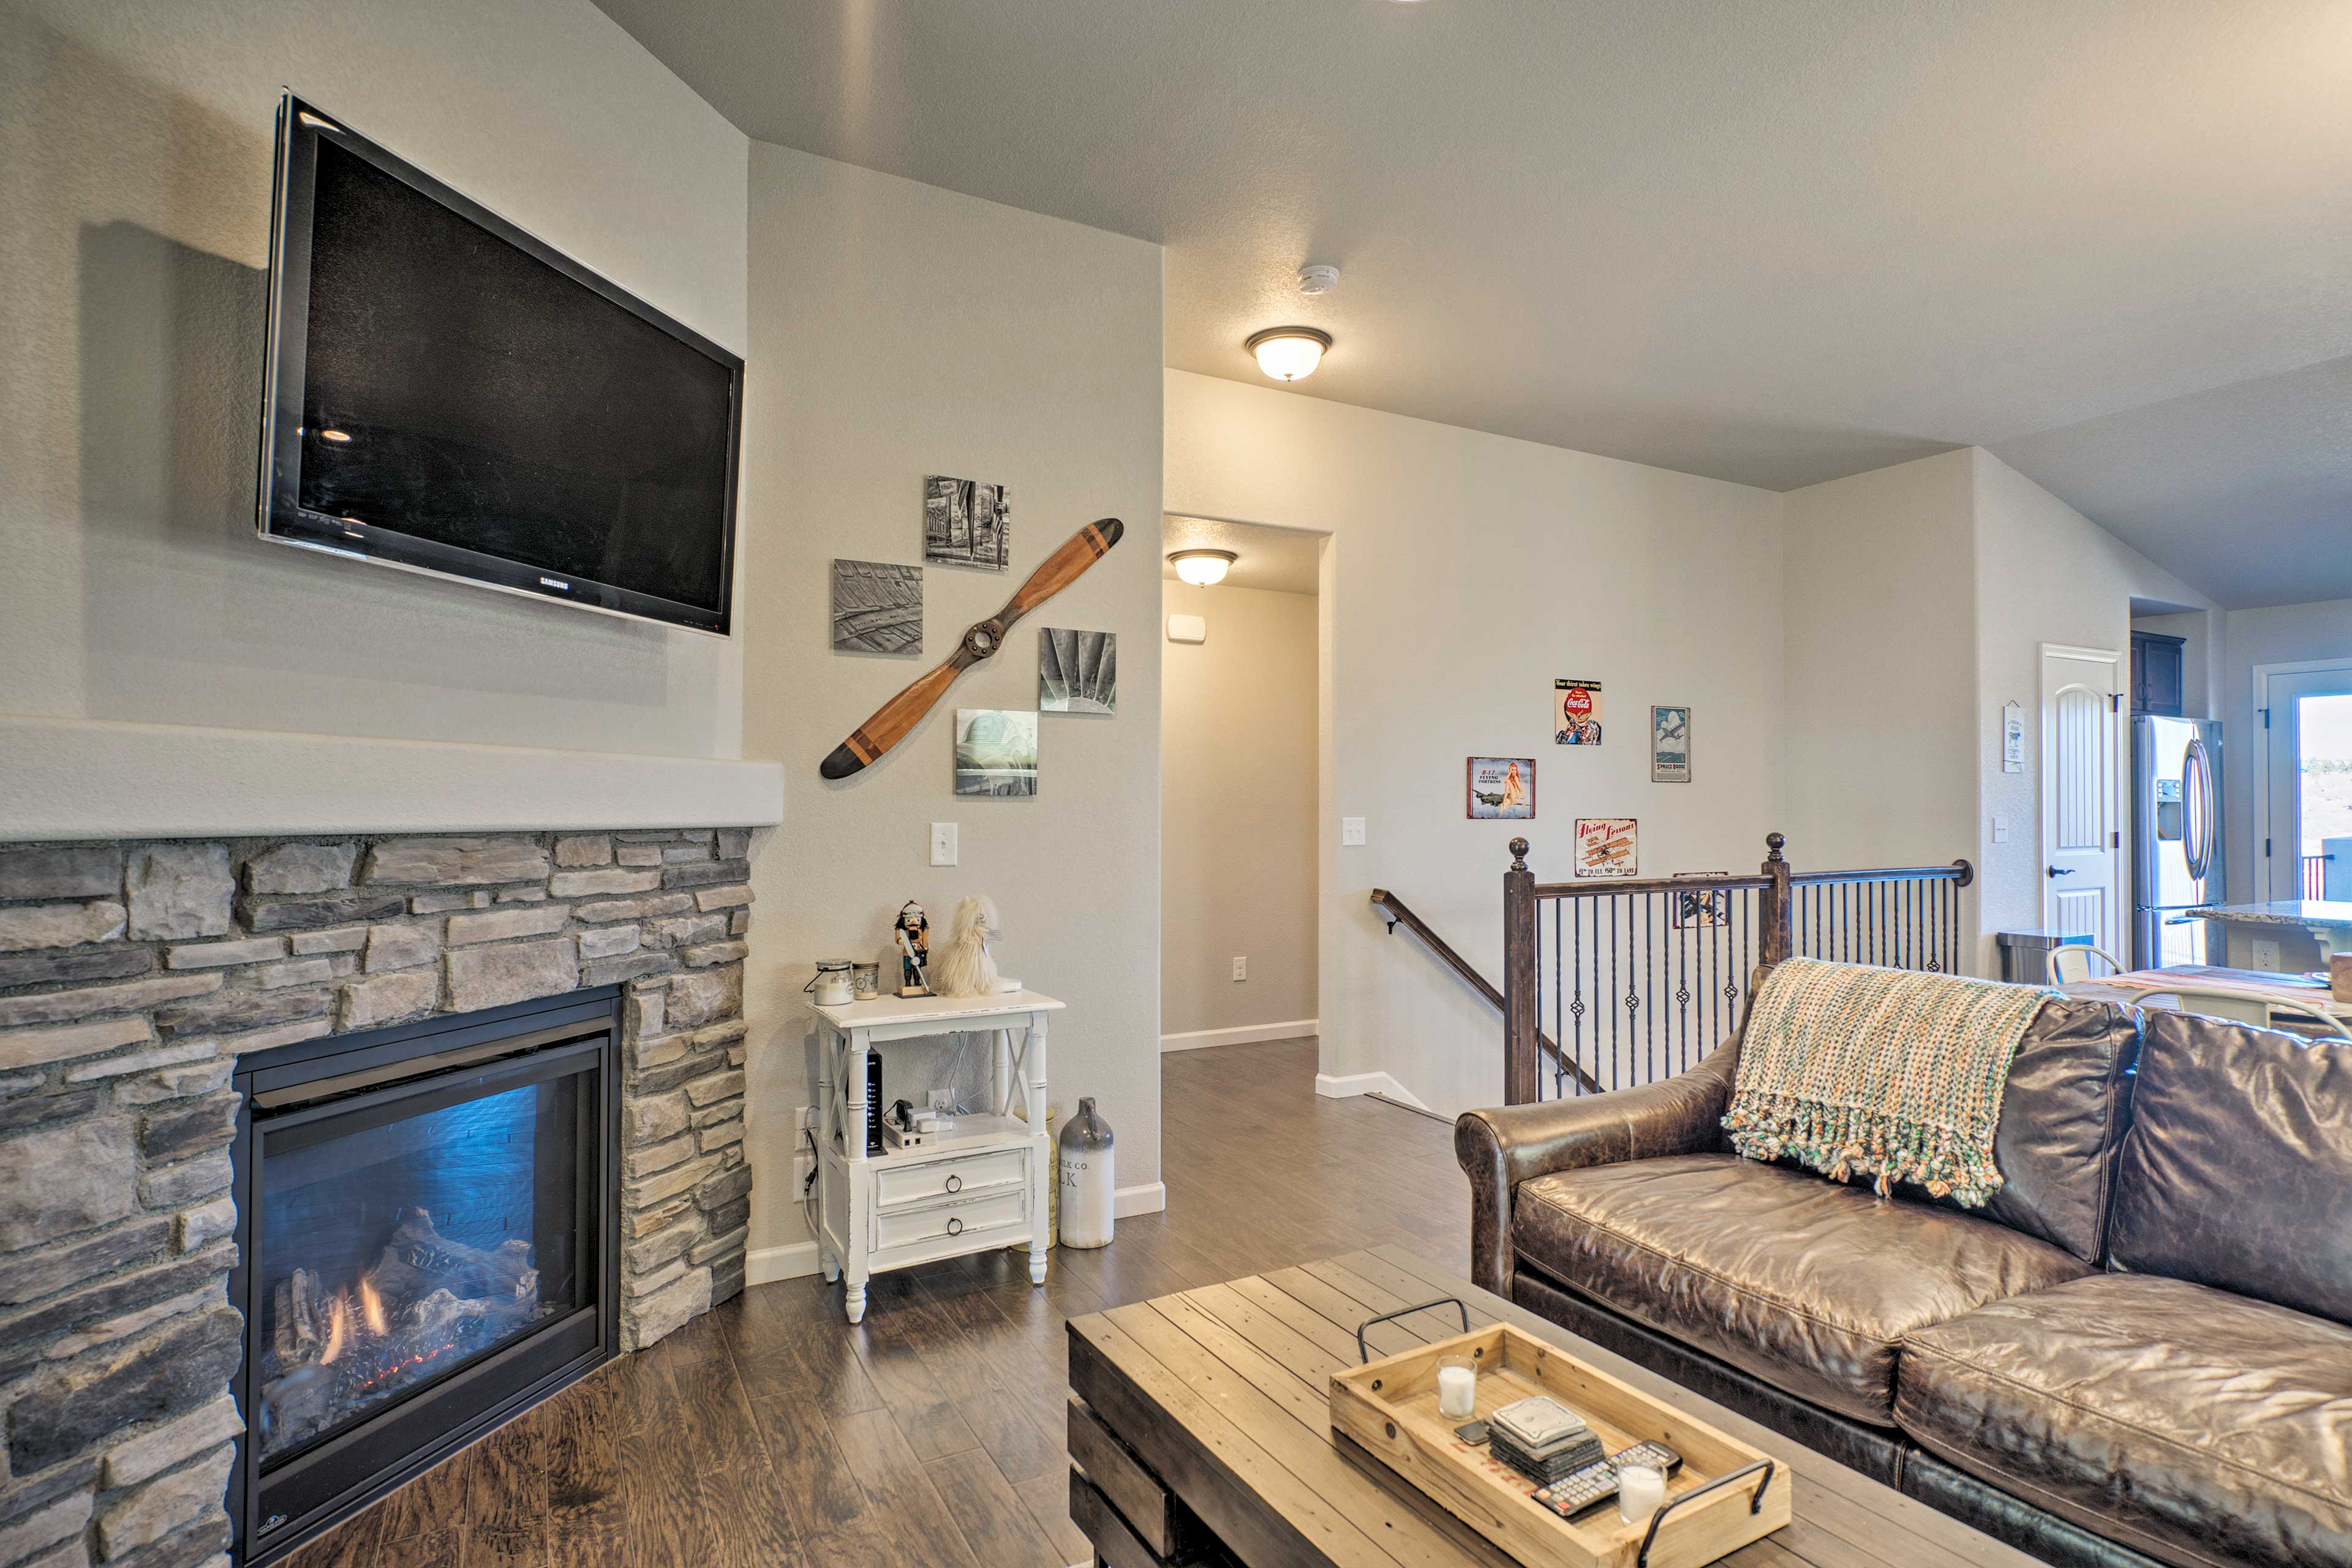 An exciting adventure awaits at this 3-bedroom, 2.5-bath Colorado Springs home!